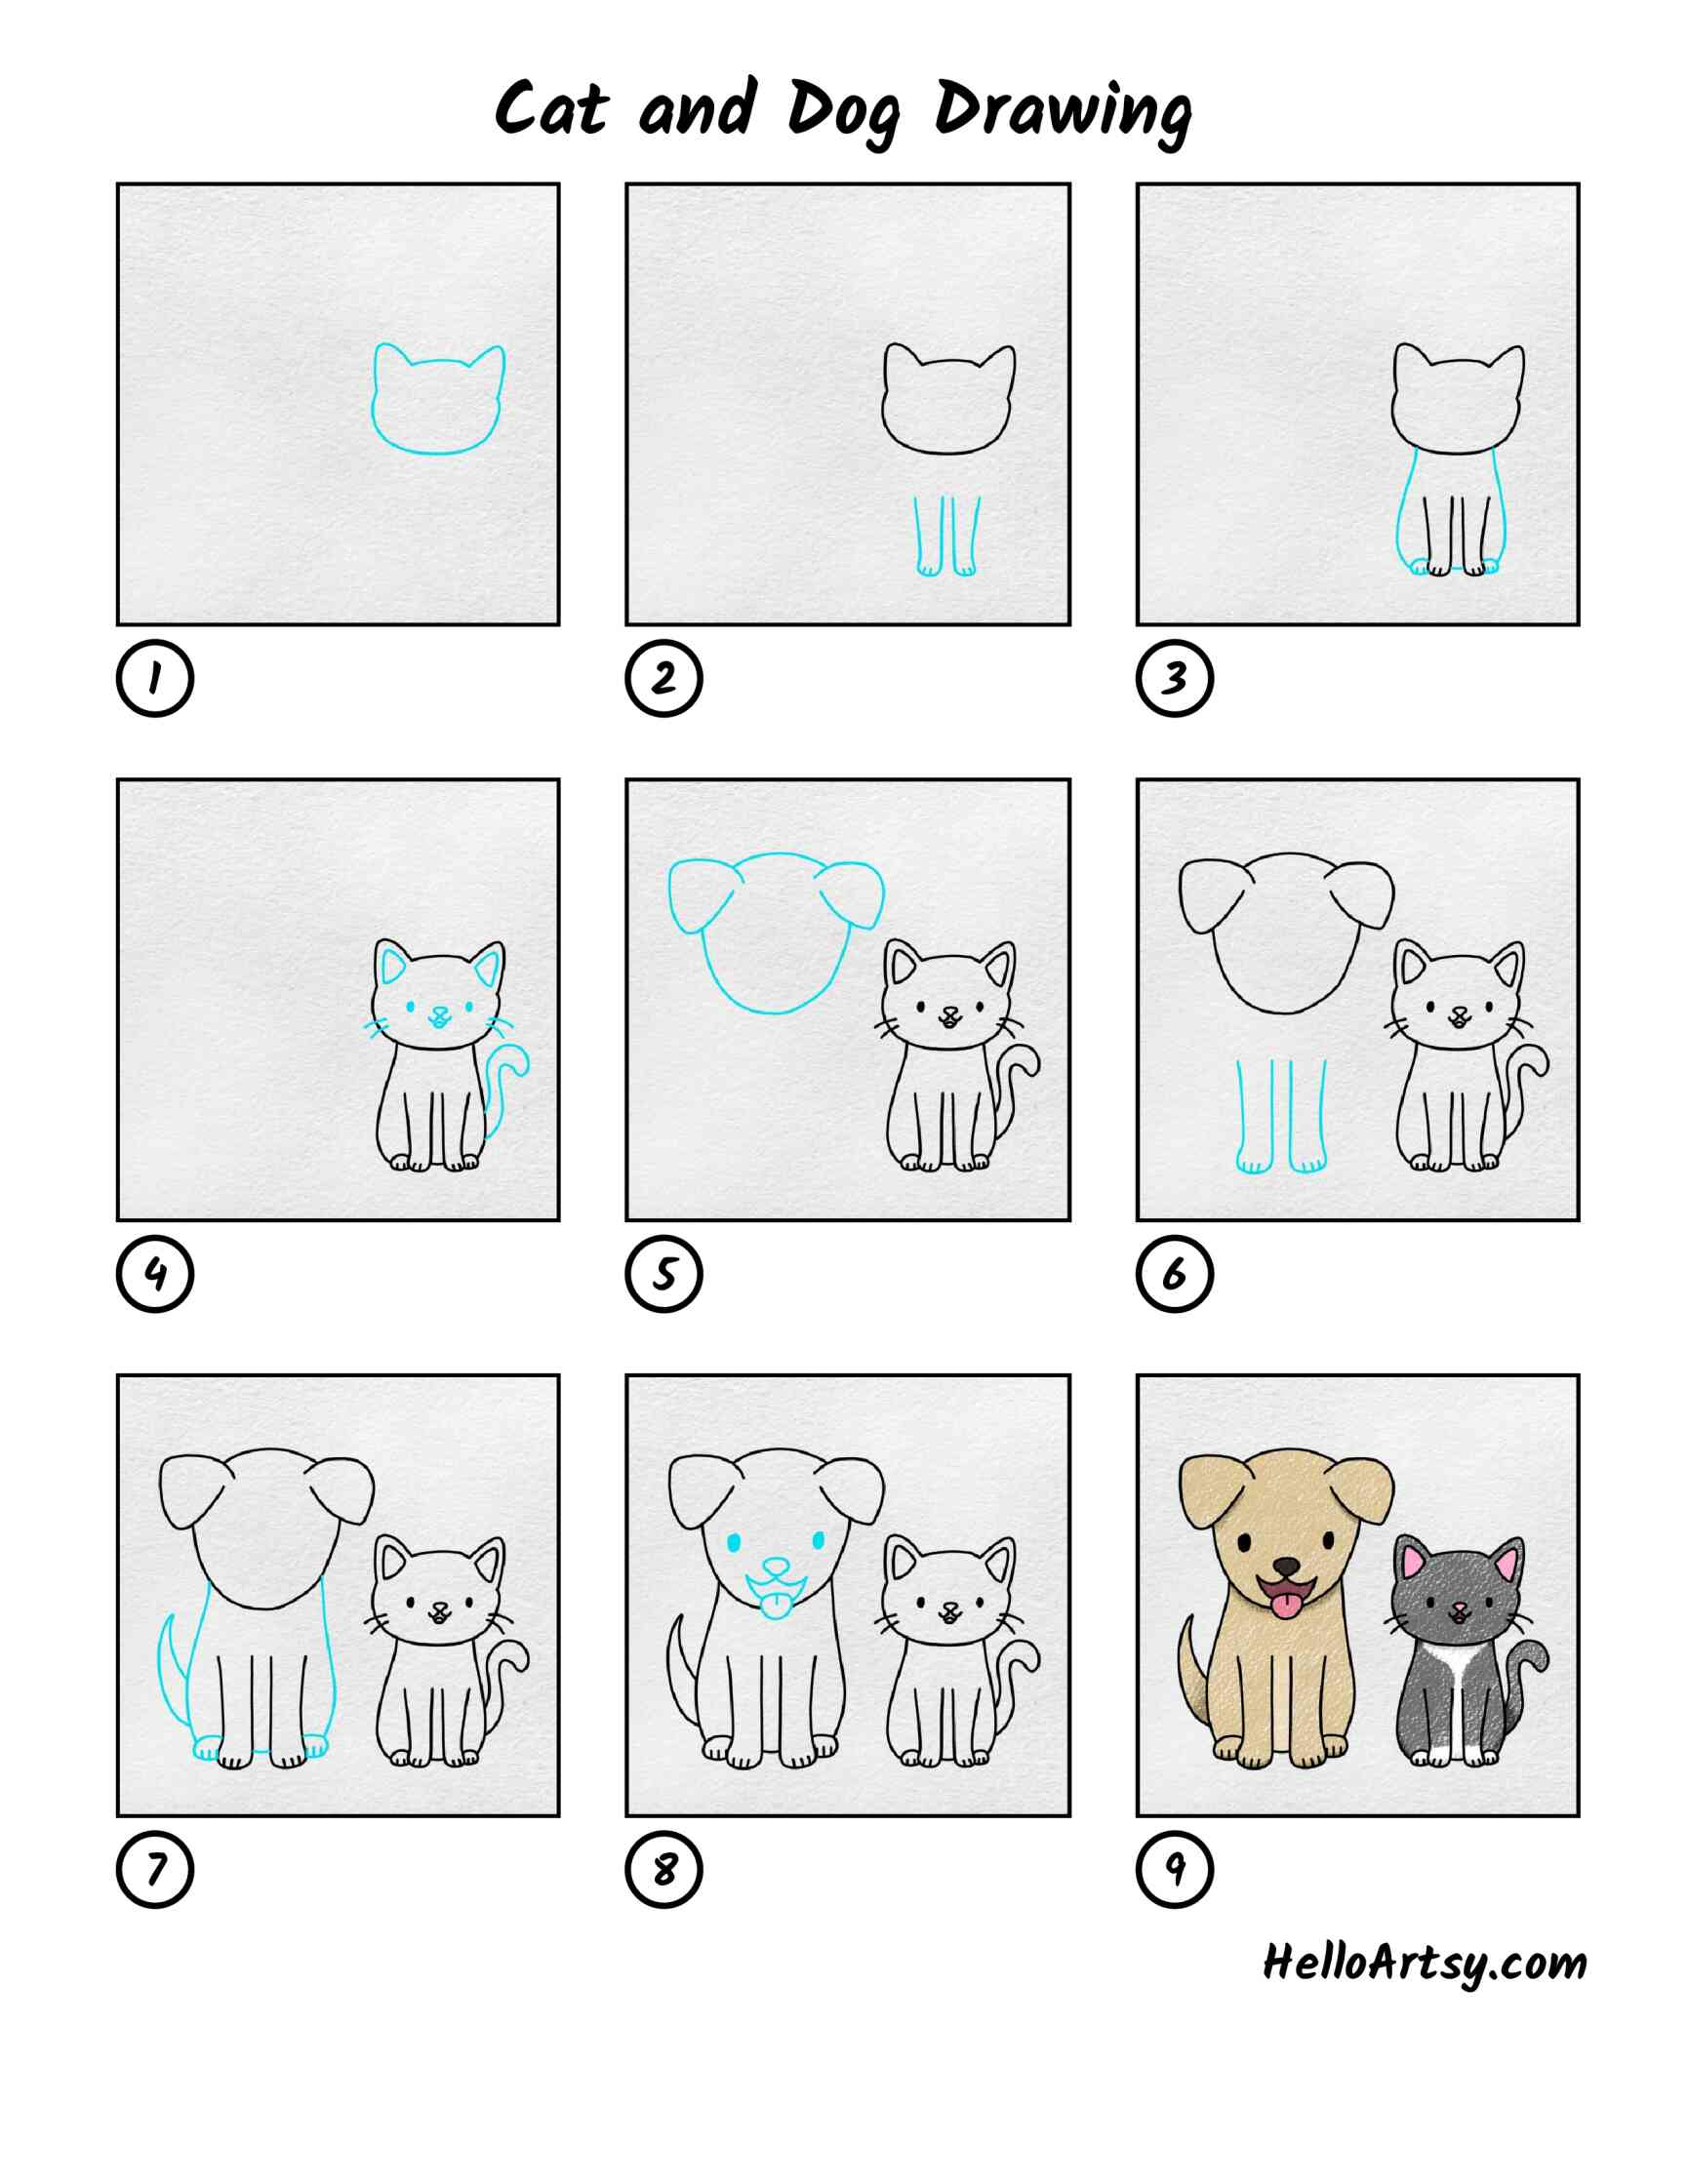 Cat And Dog Drawing: All Steps